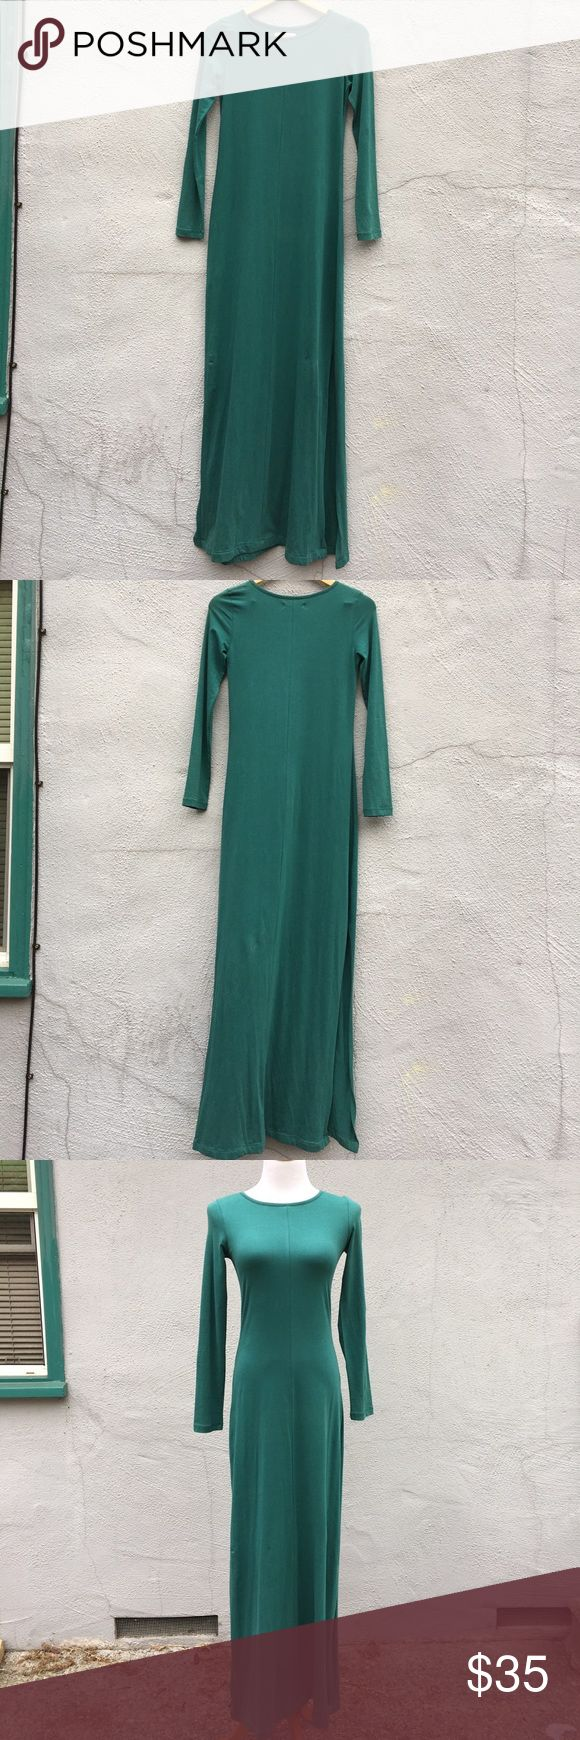 Organic Cotton Teal Maxi Dress Long Sleeved size S Organic Cotton Teal Maxi Dress Long Sleeved size S. 95% cotton/5% Lycra (nice amount of stretch to it!). Very body conscious, with slits on both sides (from about the knee down, depending on height). Gorgeous teal color. Excellent used condition! Thank you for stopping by. Synergy Organic Clothing Dresses Maxi